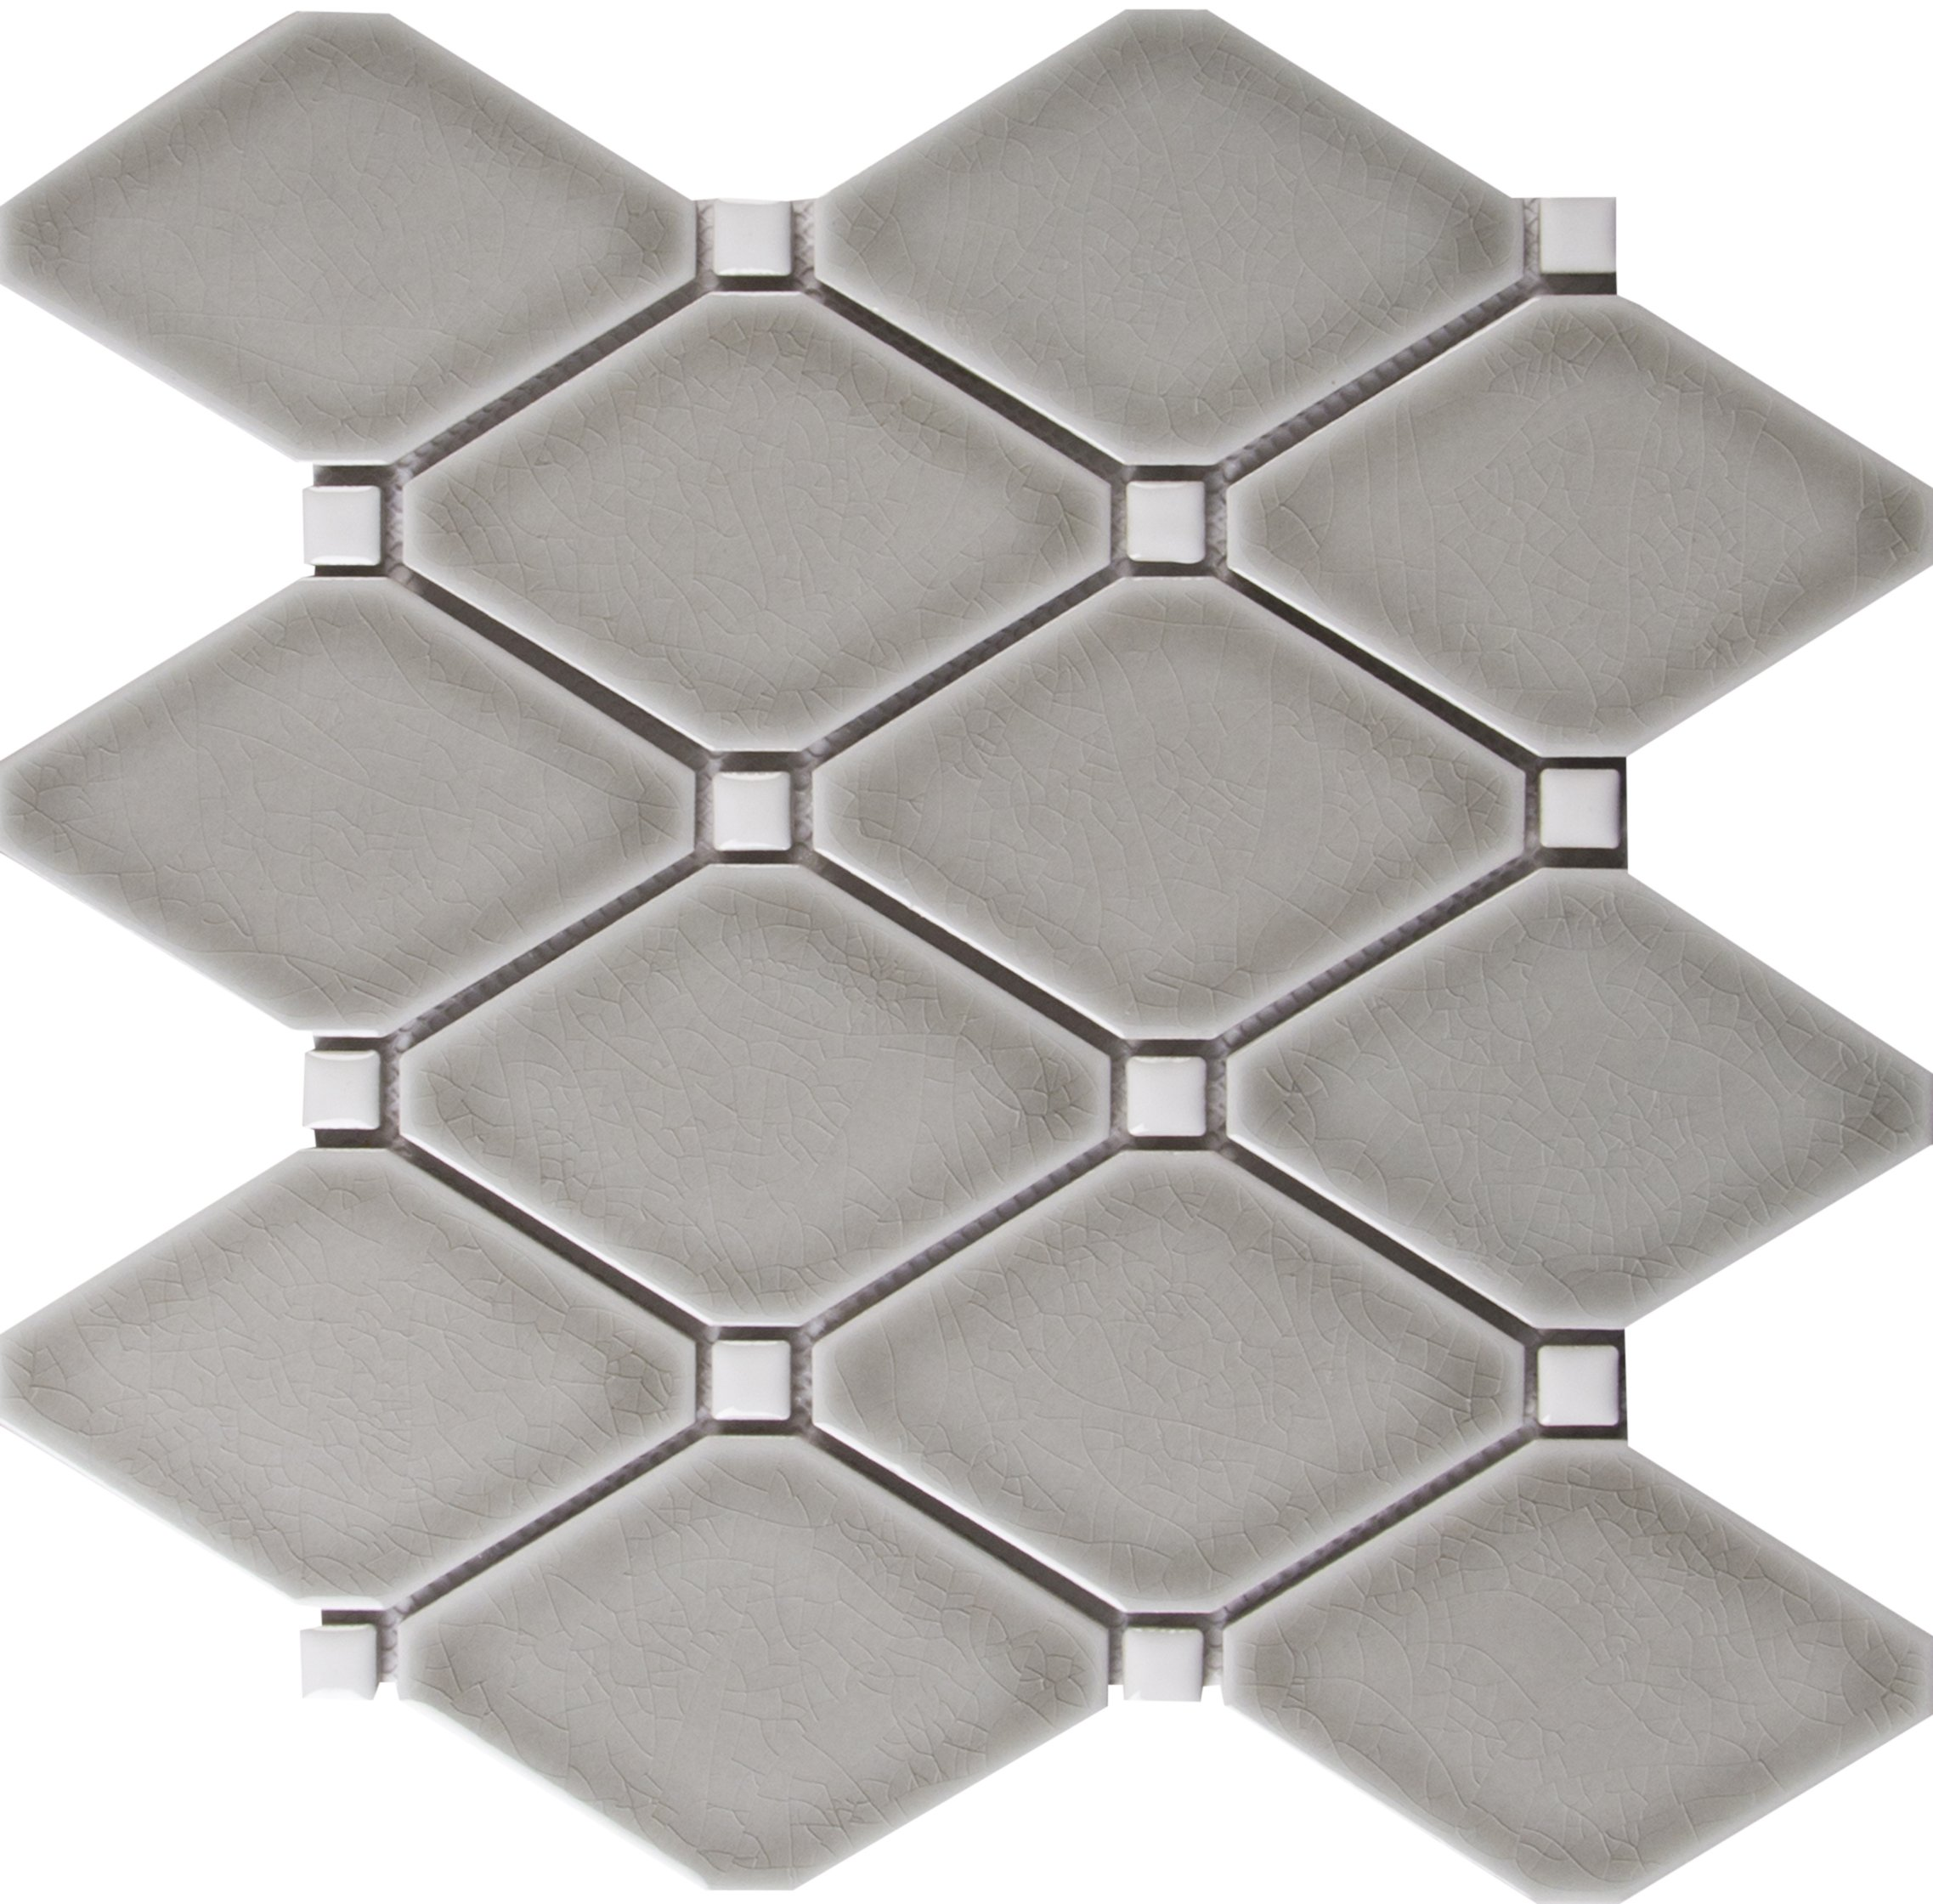 M S International Diamond Dove Gray 12.28 In. X 12.8 In. X 8 mm Glazed Ceramic Mesh-Mounted Mosaic Tile, (10.9 sq. ft., 10 pieces per case)